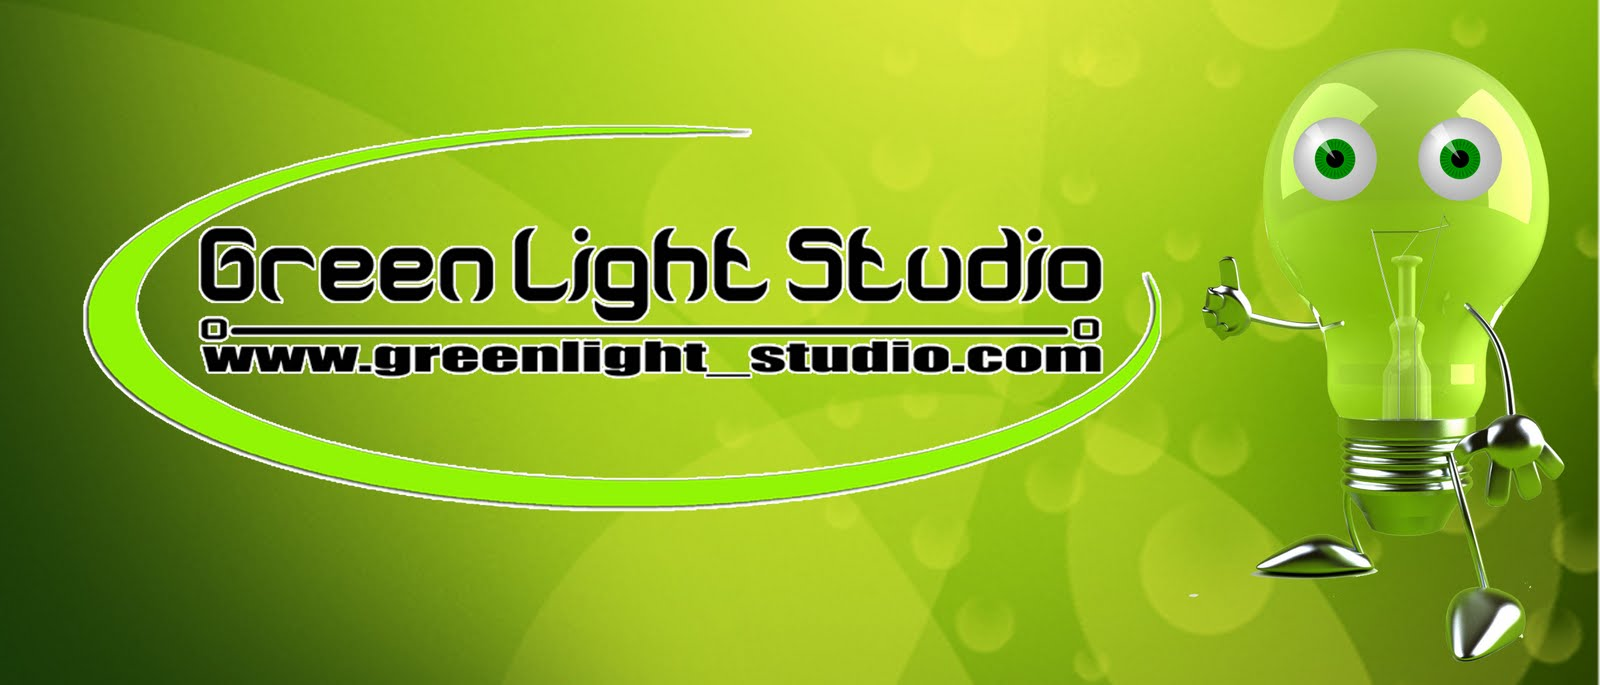 www.greenlight_studio